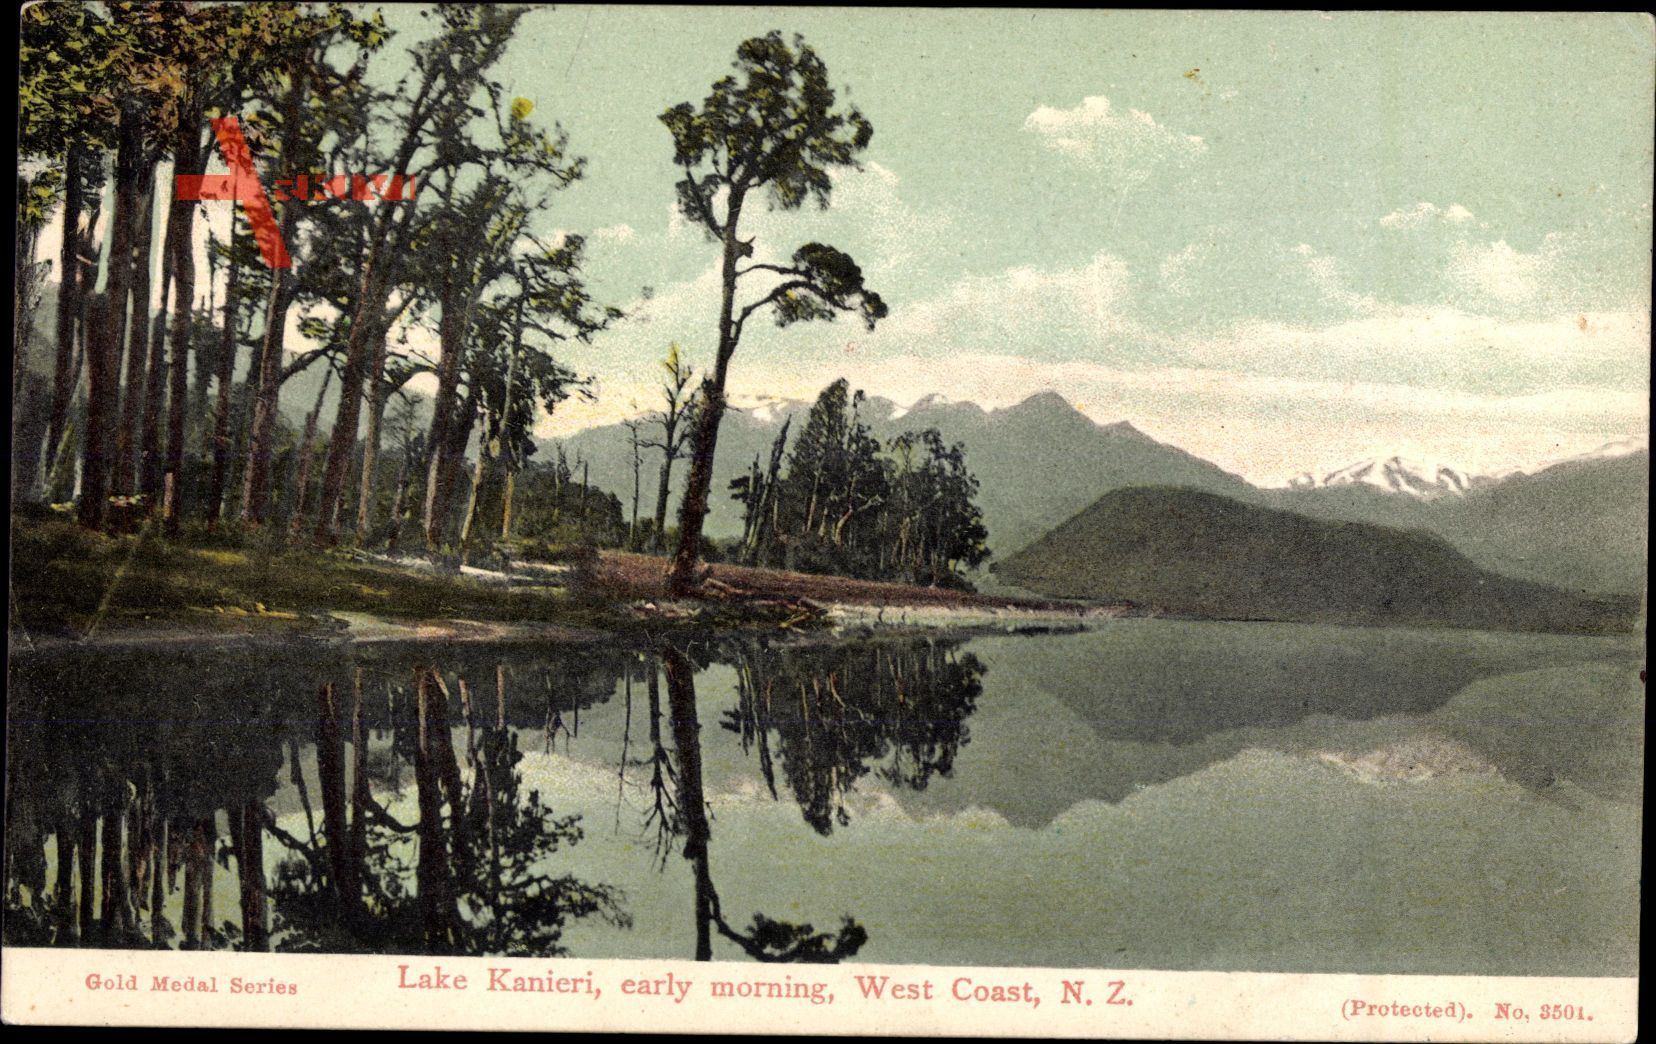 West Coast Neuseeland, Lake Kanieri, early morning, Berge, See, Wald